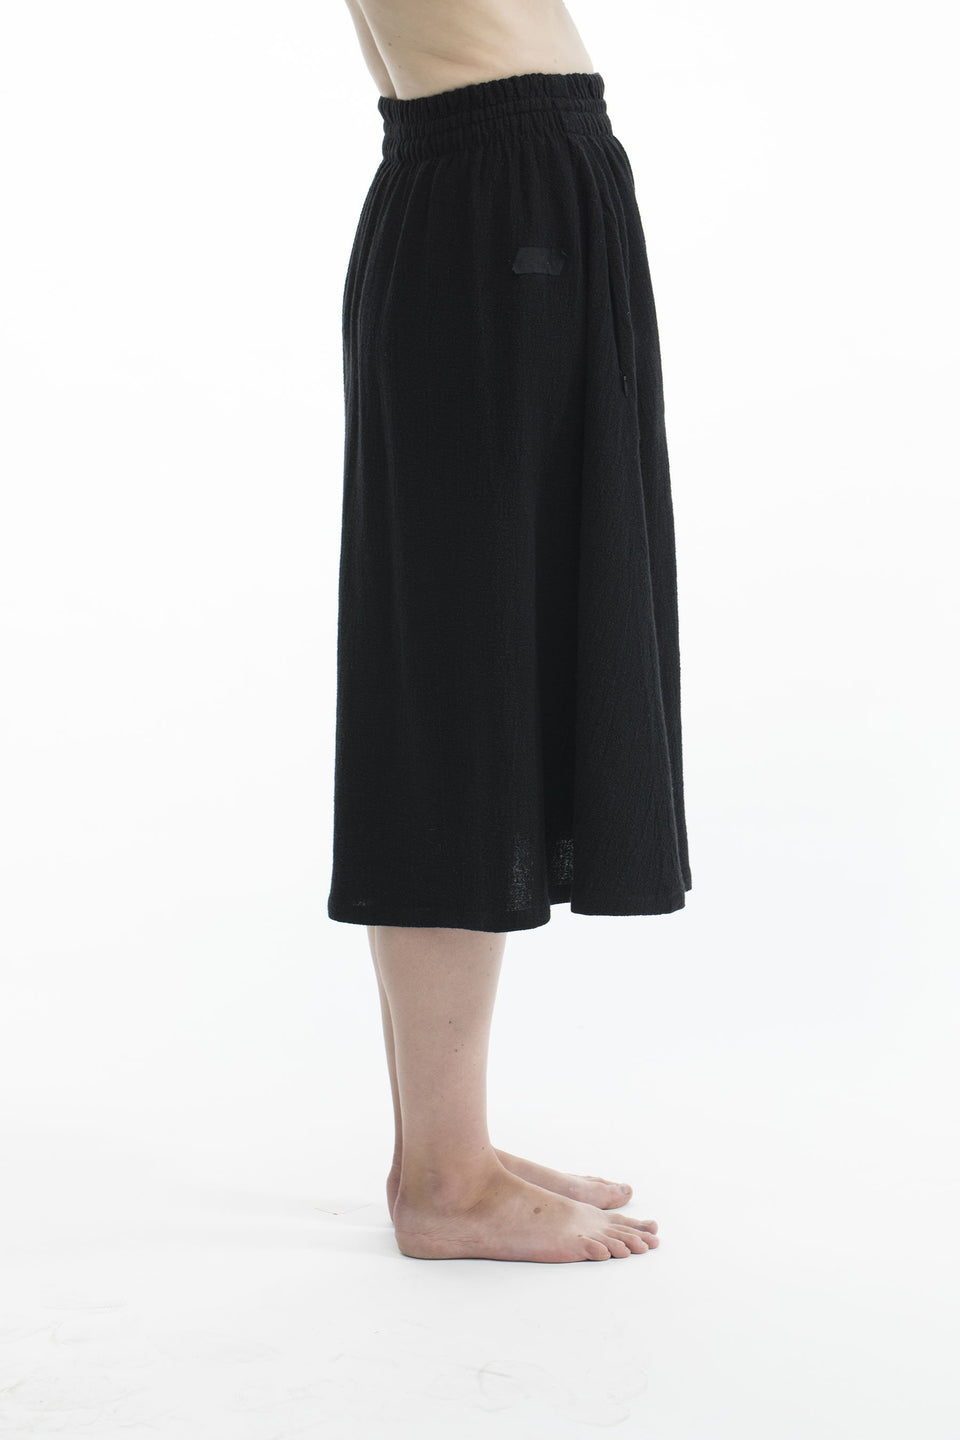 RAW Women Skirt Set Black